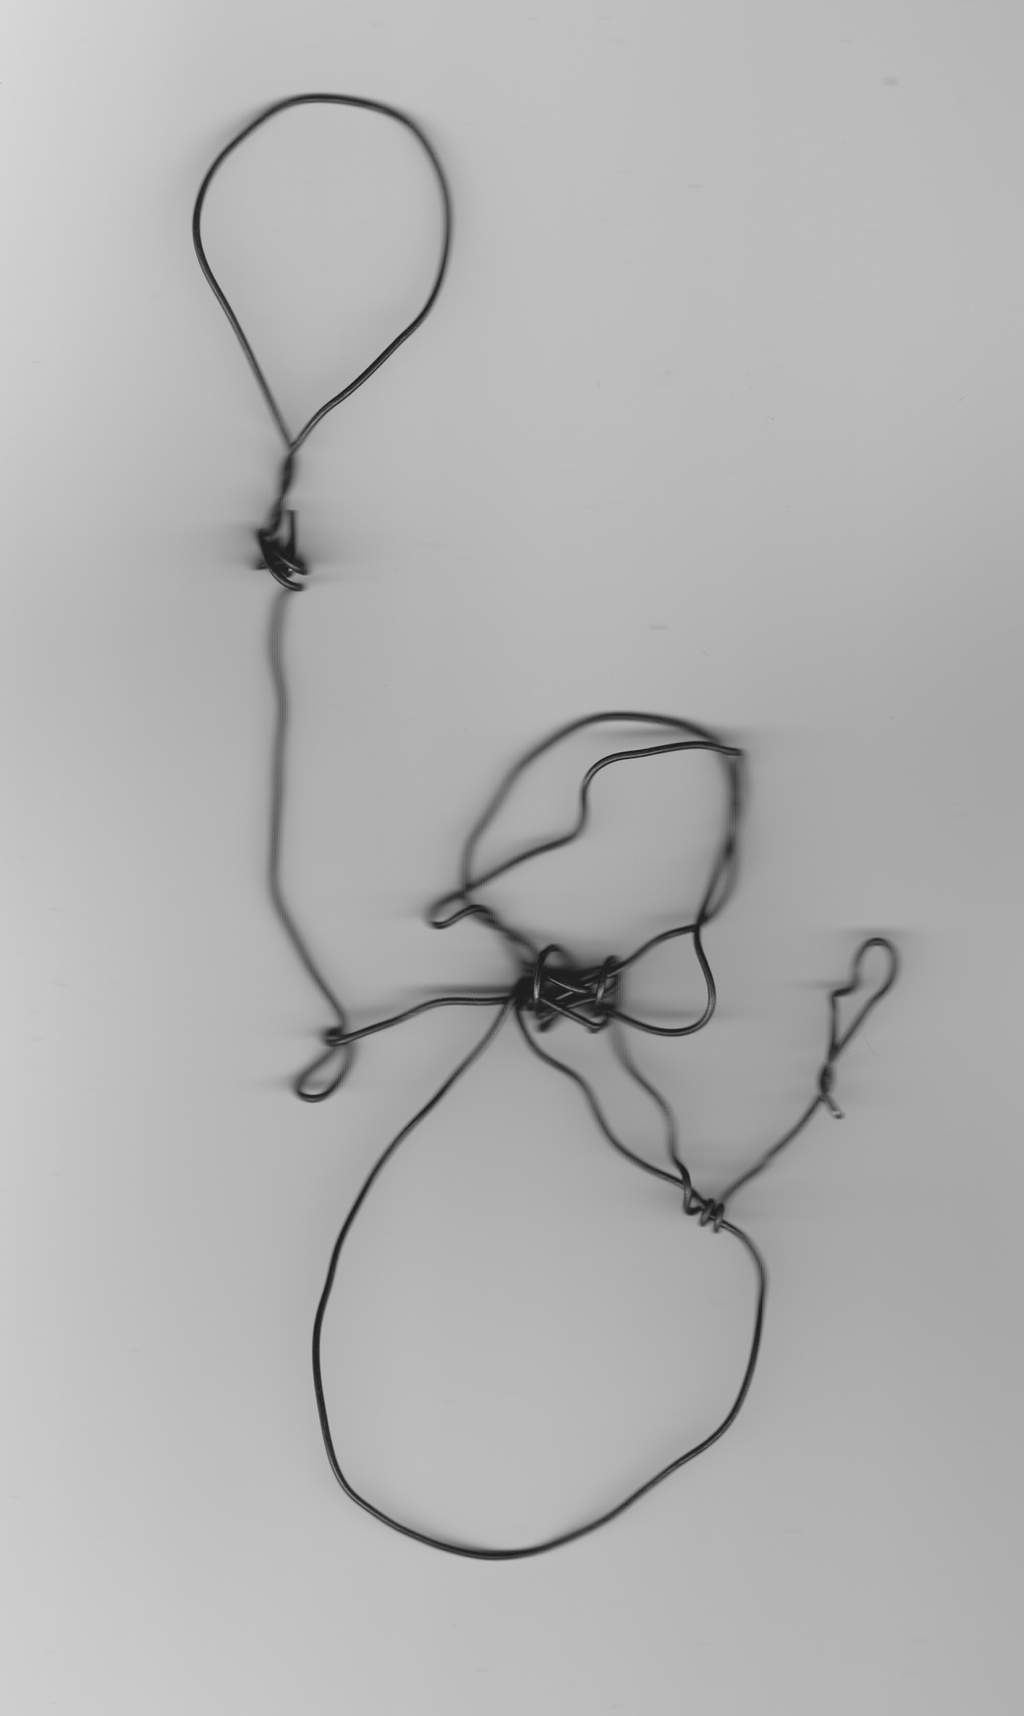 2D Wire Sculpture By Celestrai